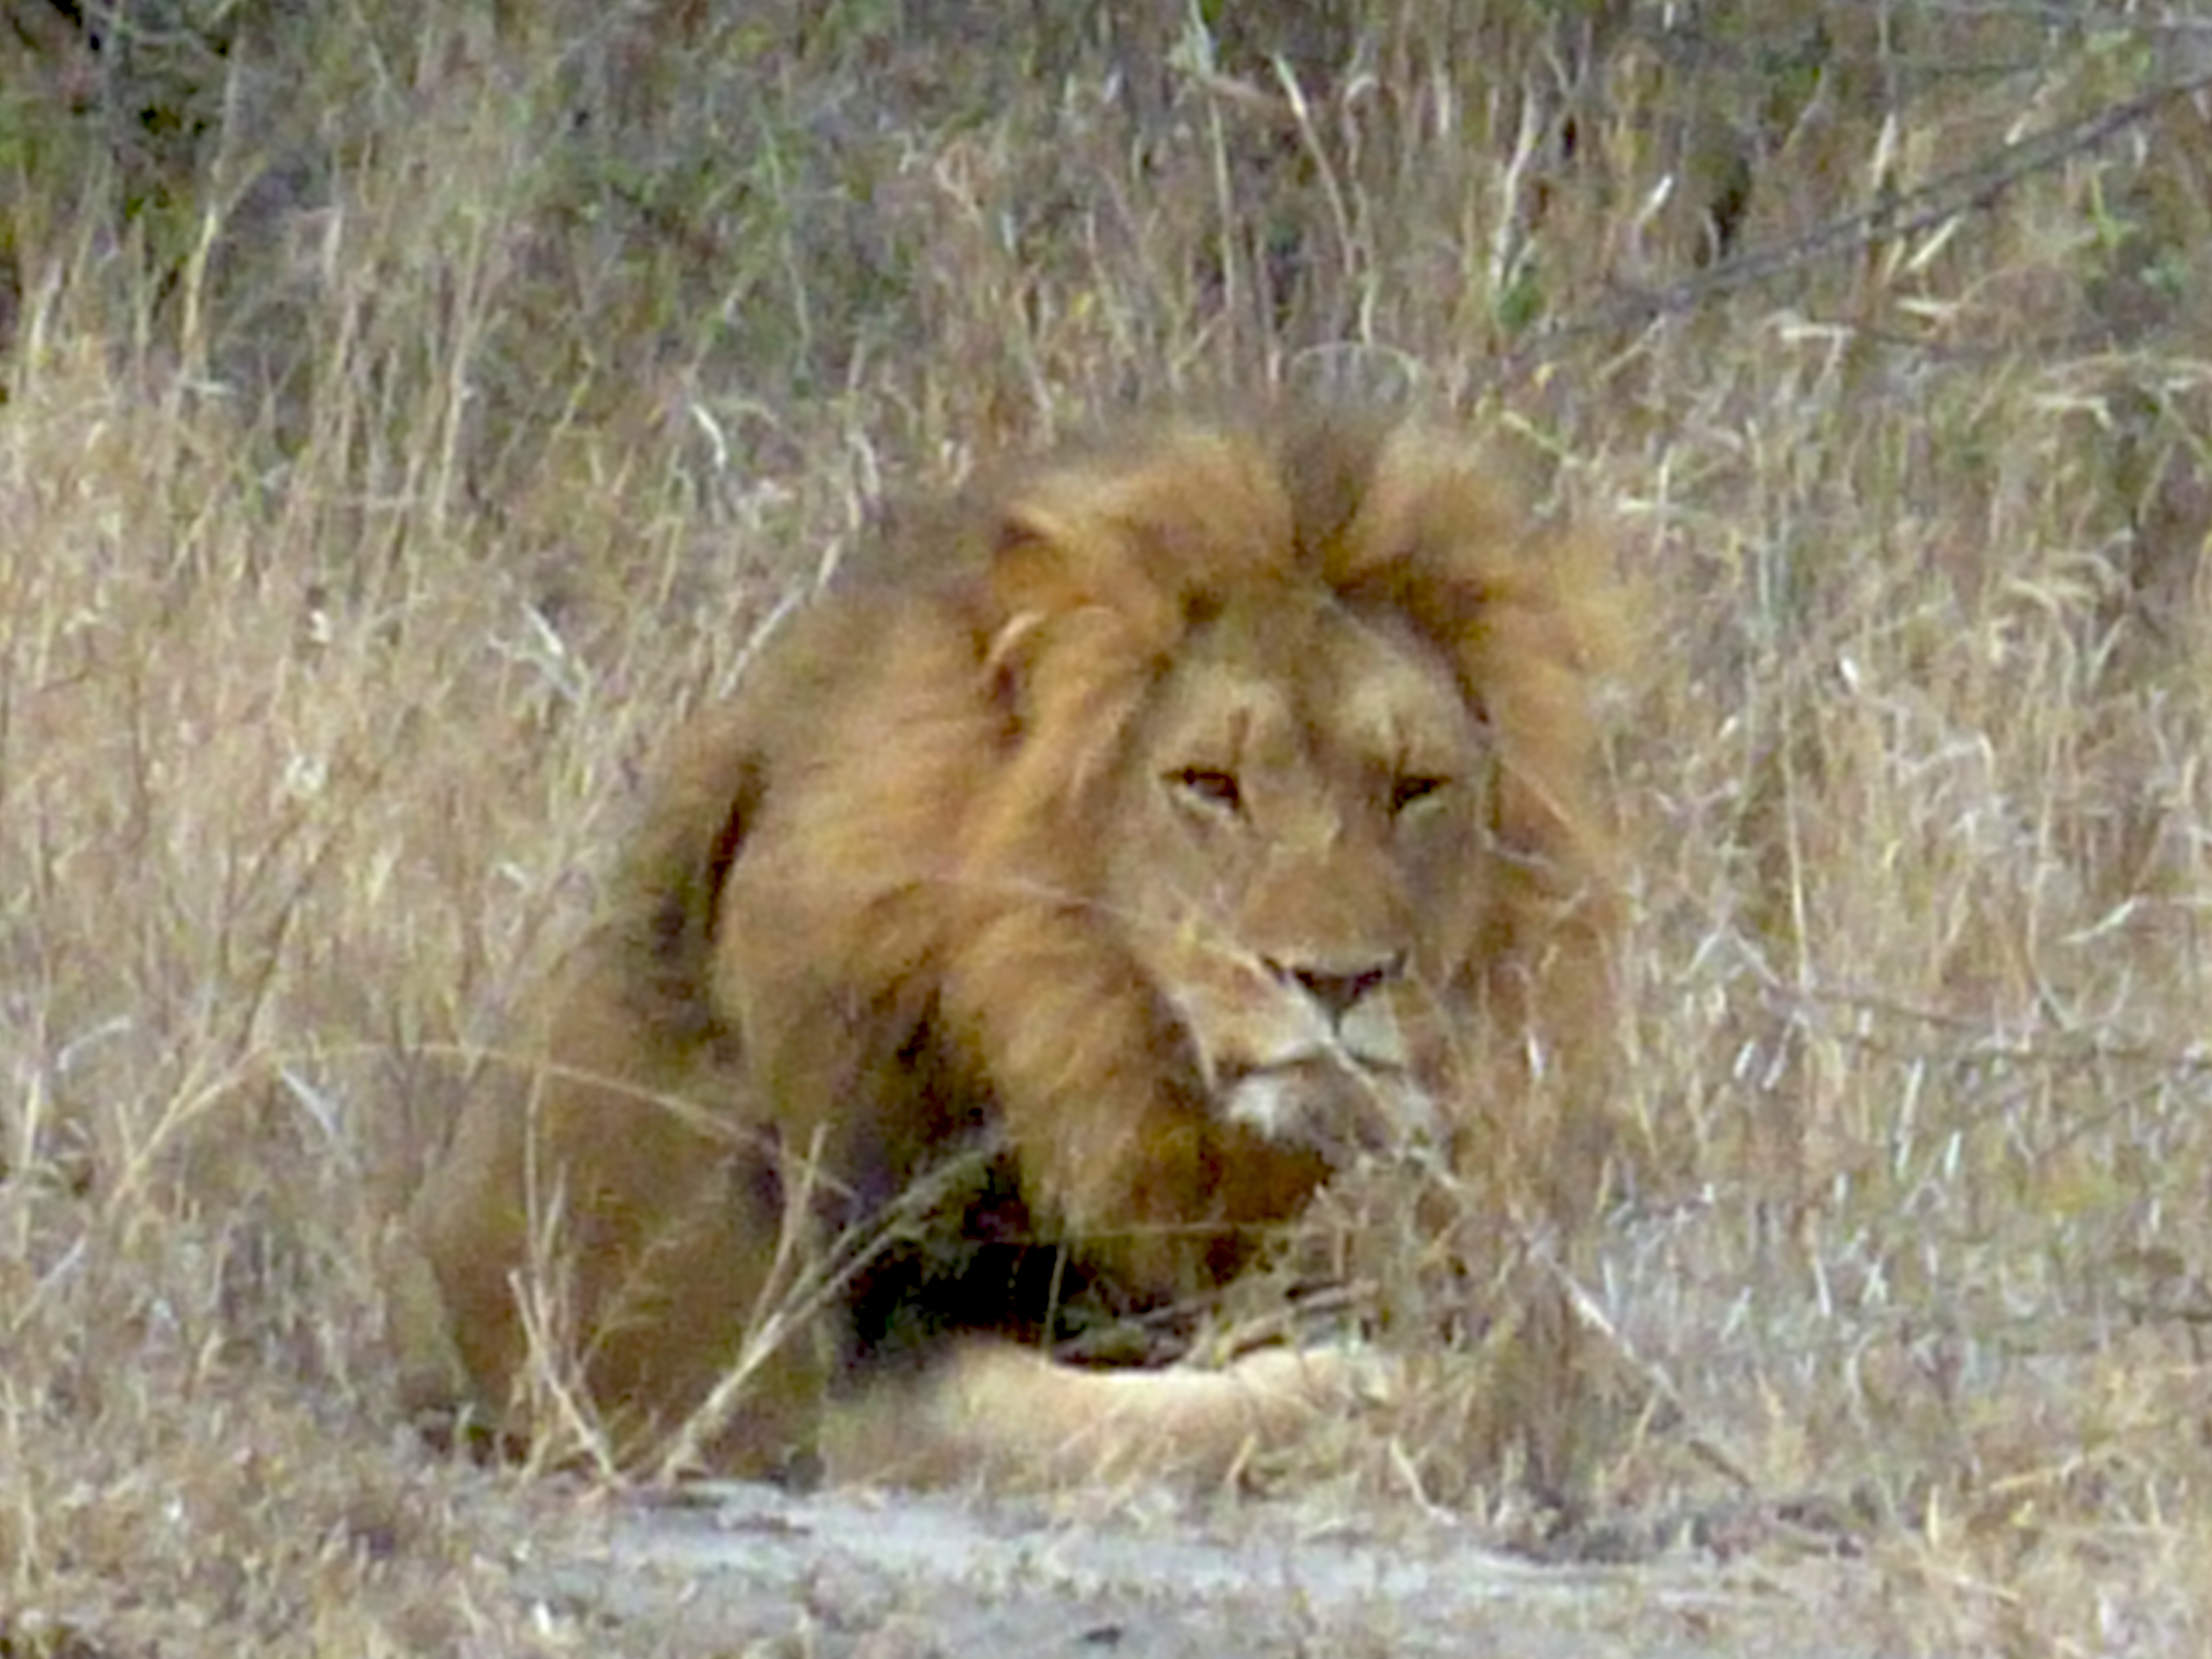 Lions, cheetahs & more at Makutsi Safari Springs